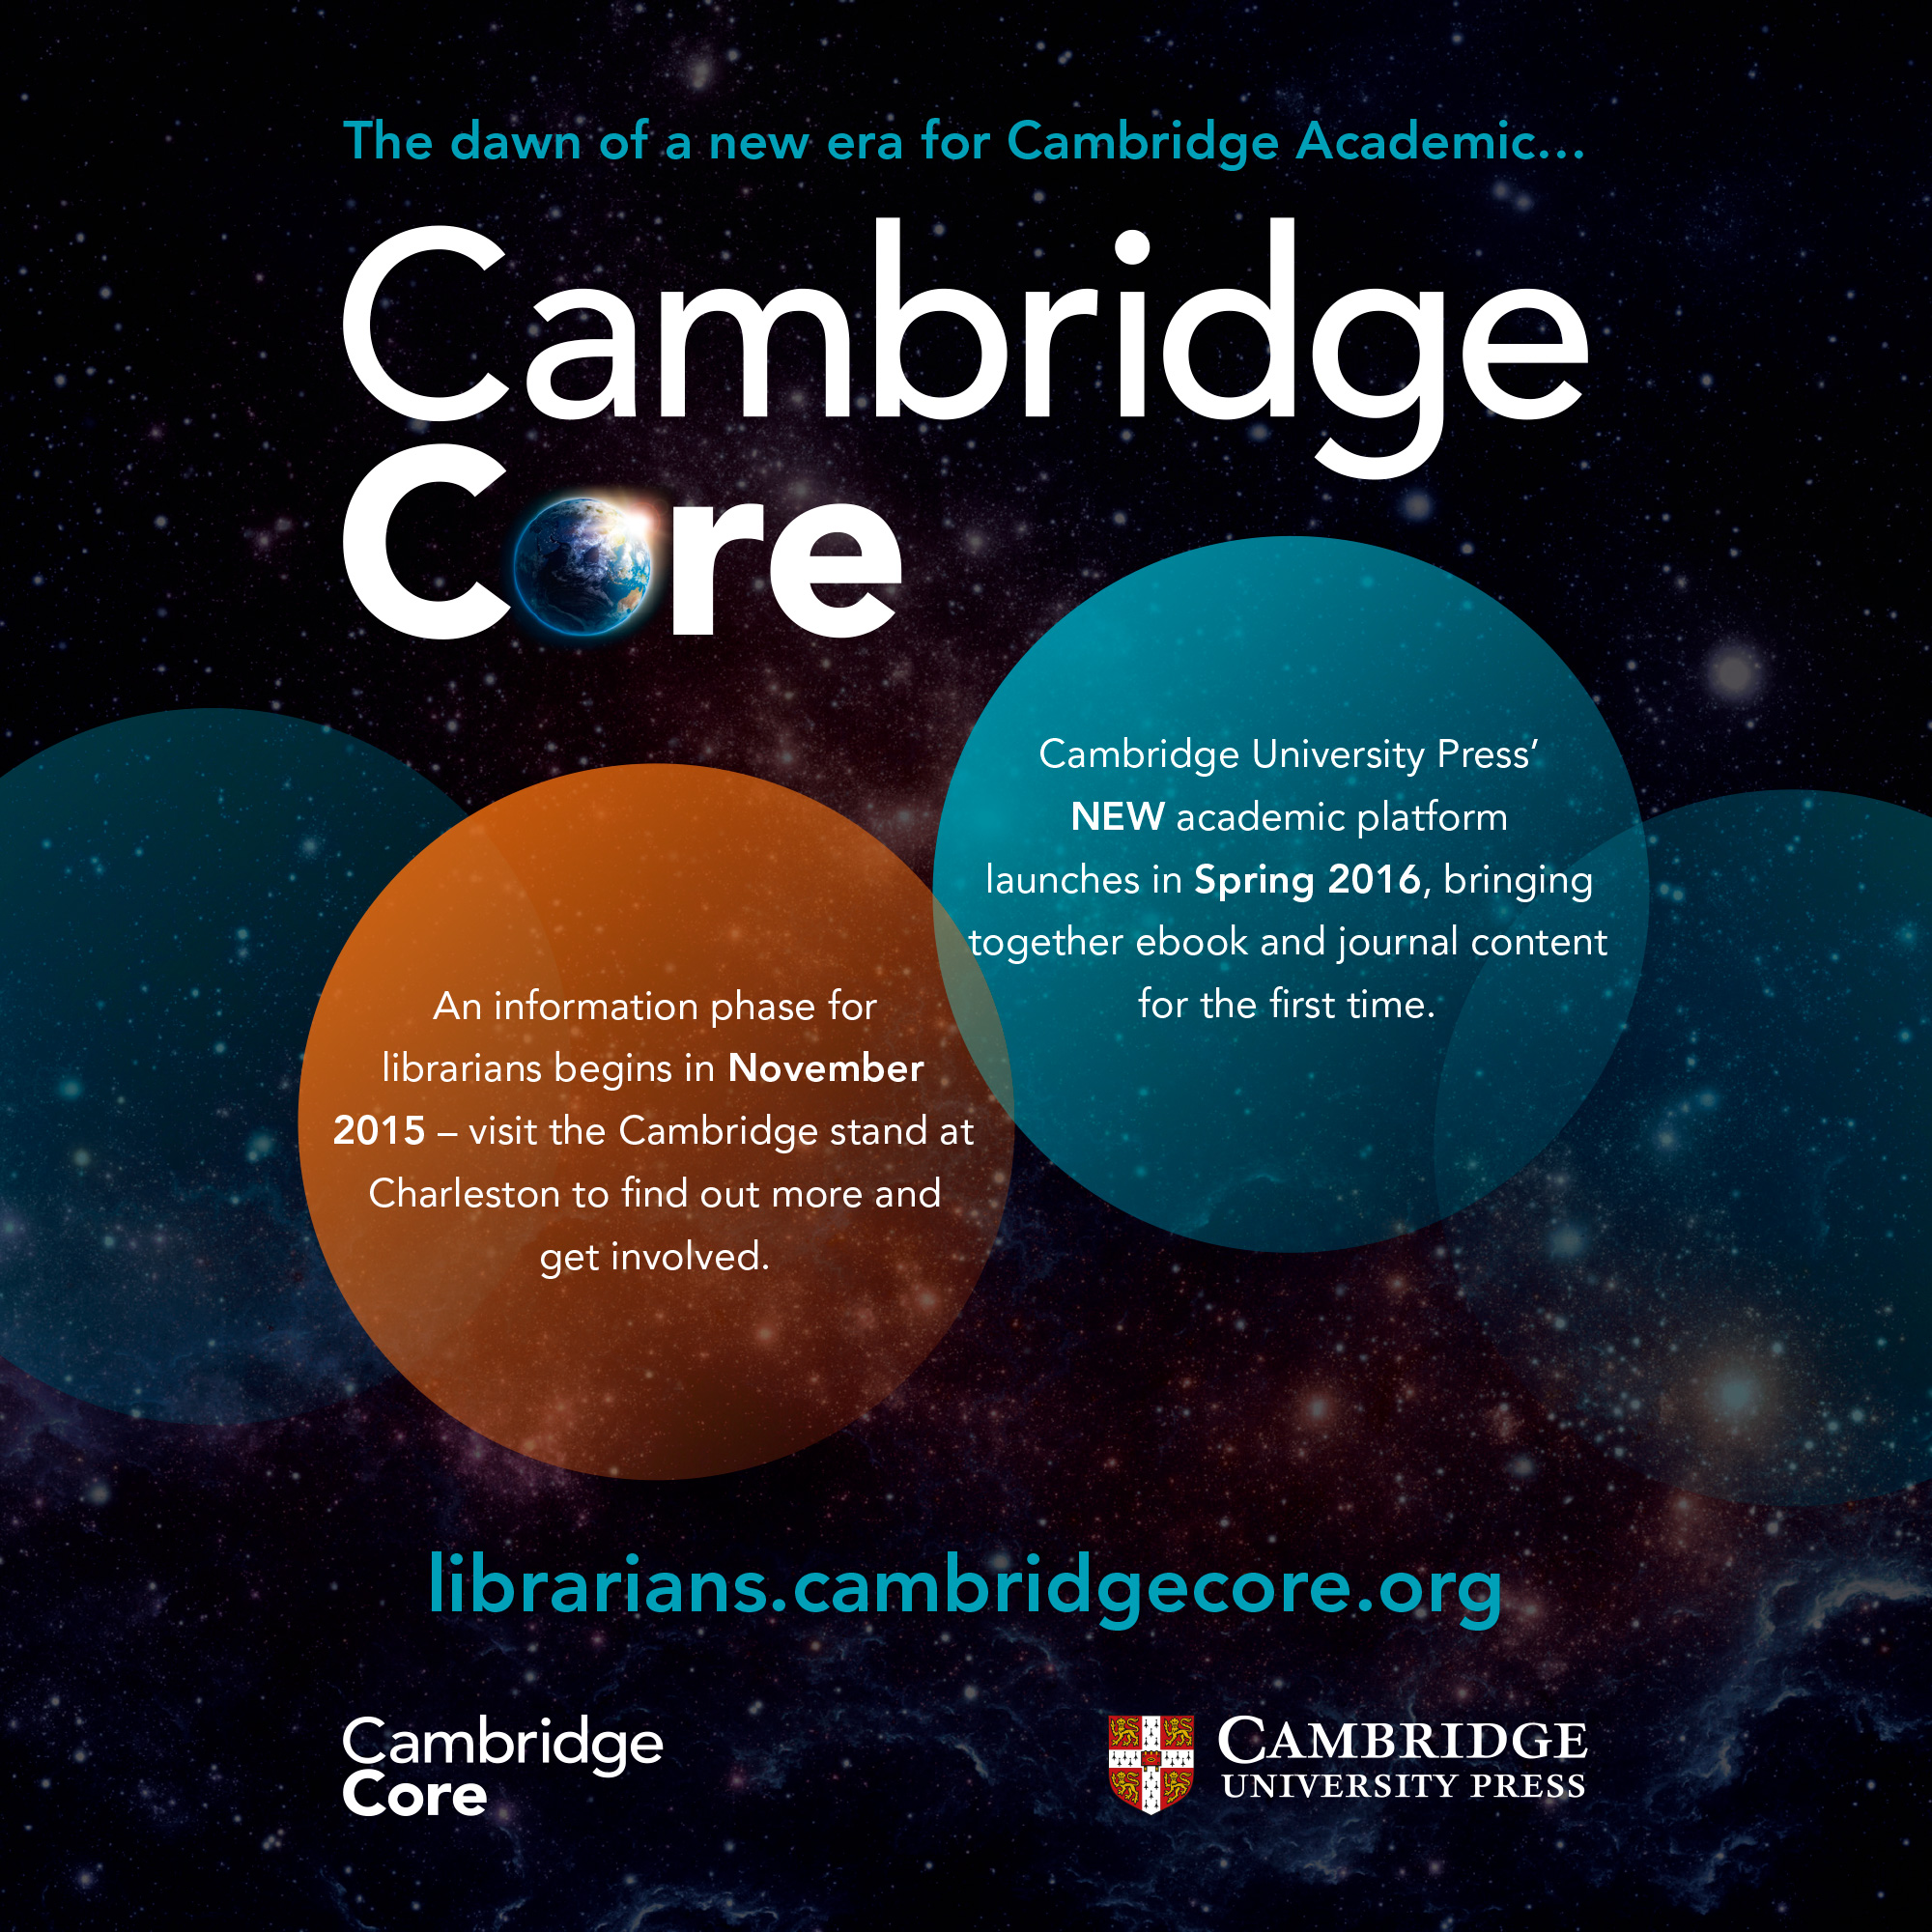 Cambridge Core Marketing Design